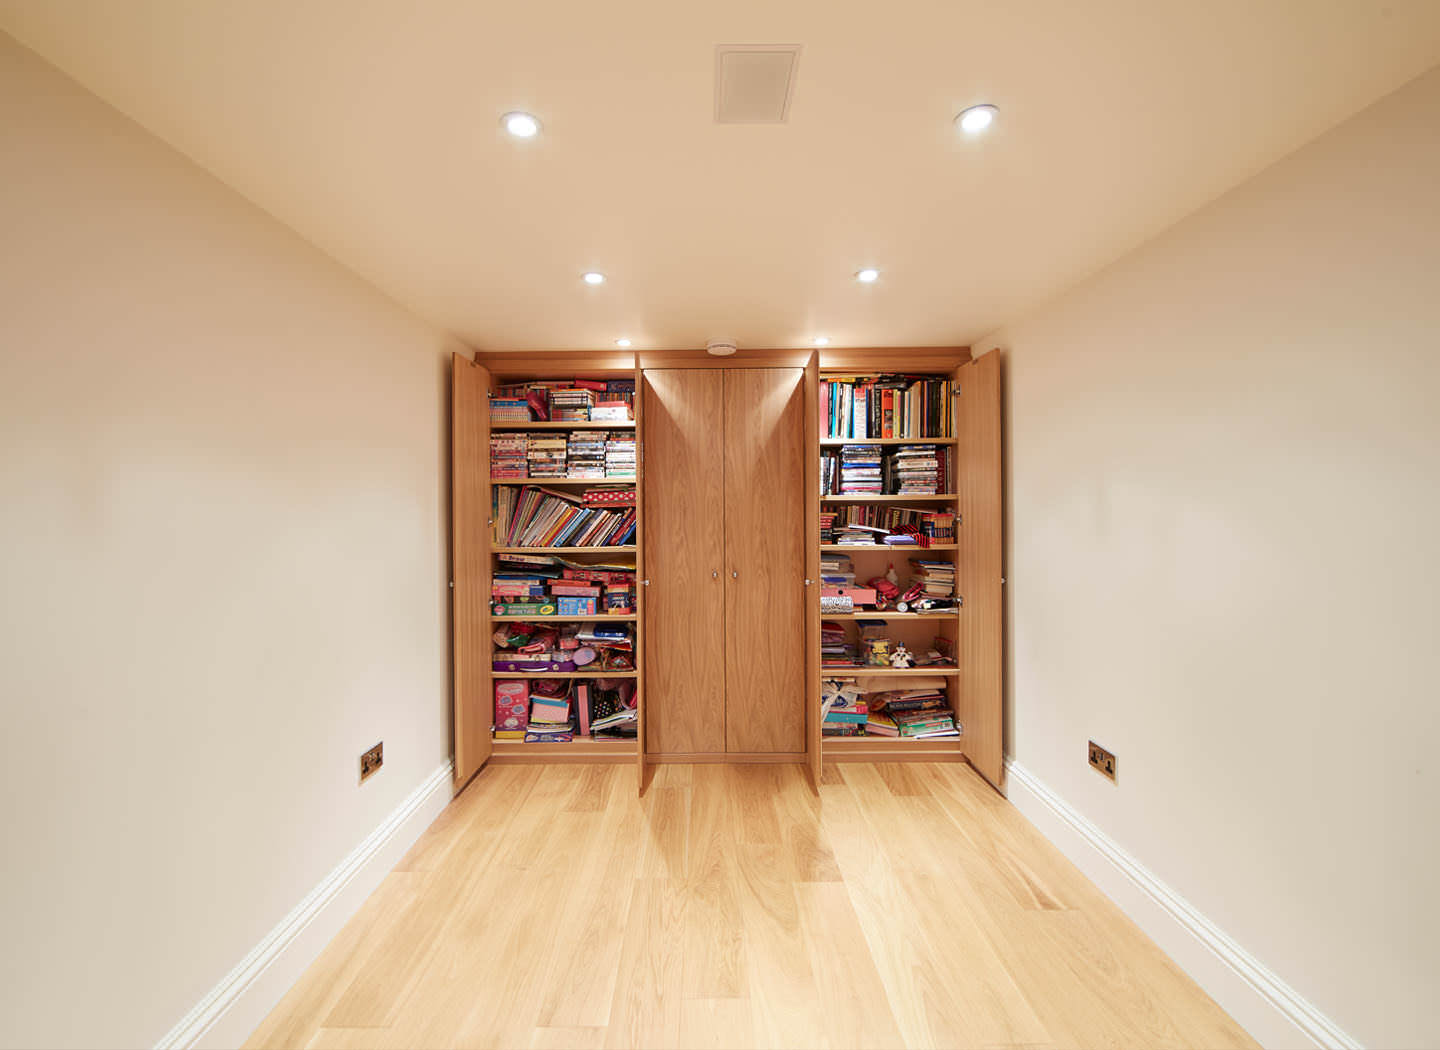 Case study showing fitted cupboard and bookshelves in basement conversion